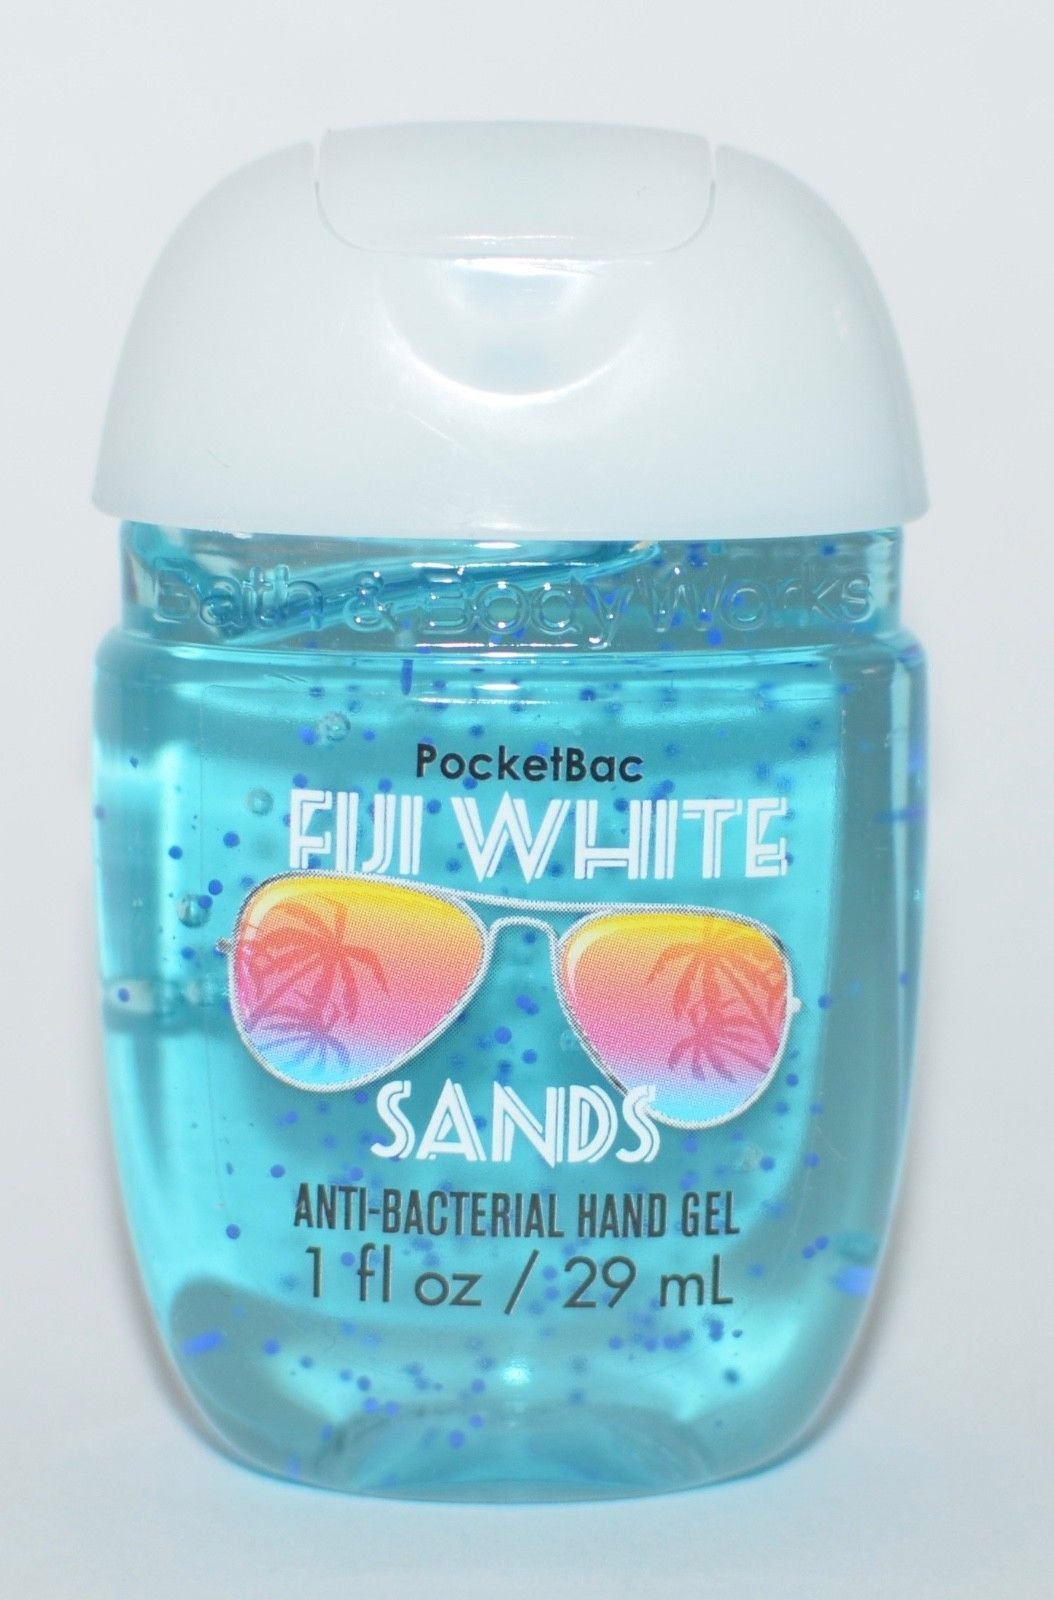 amazon.com - Bath & Body Works PocketBac Hand Gel Sanitizer Fiji White Sands